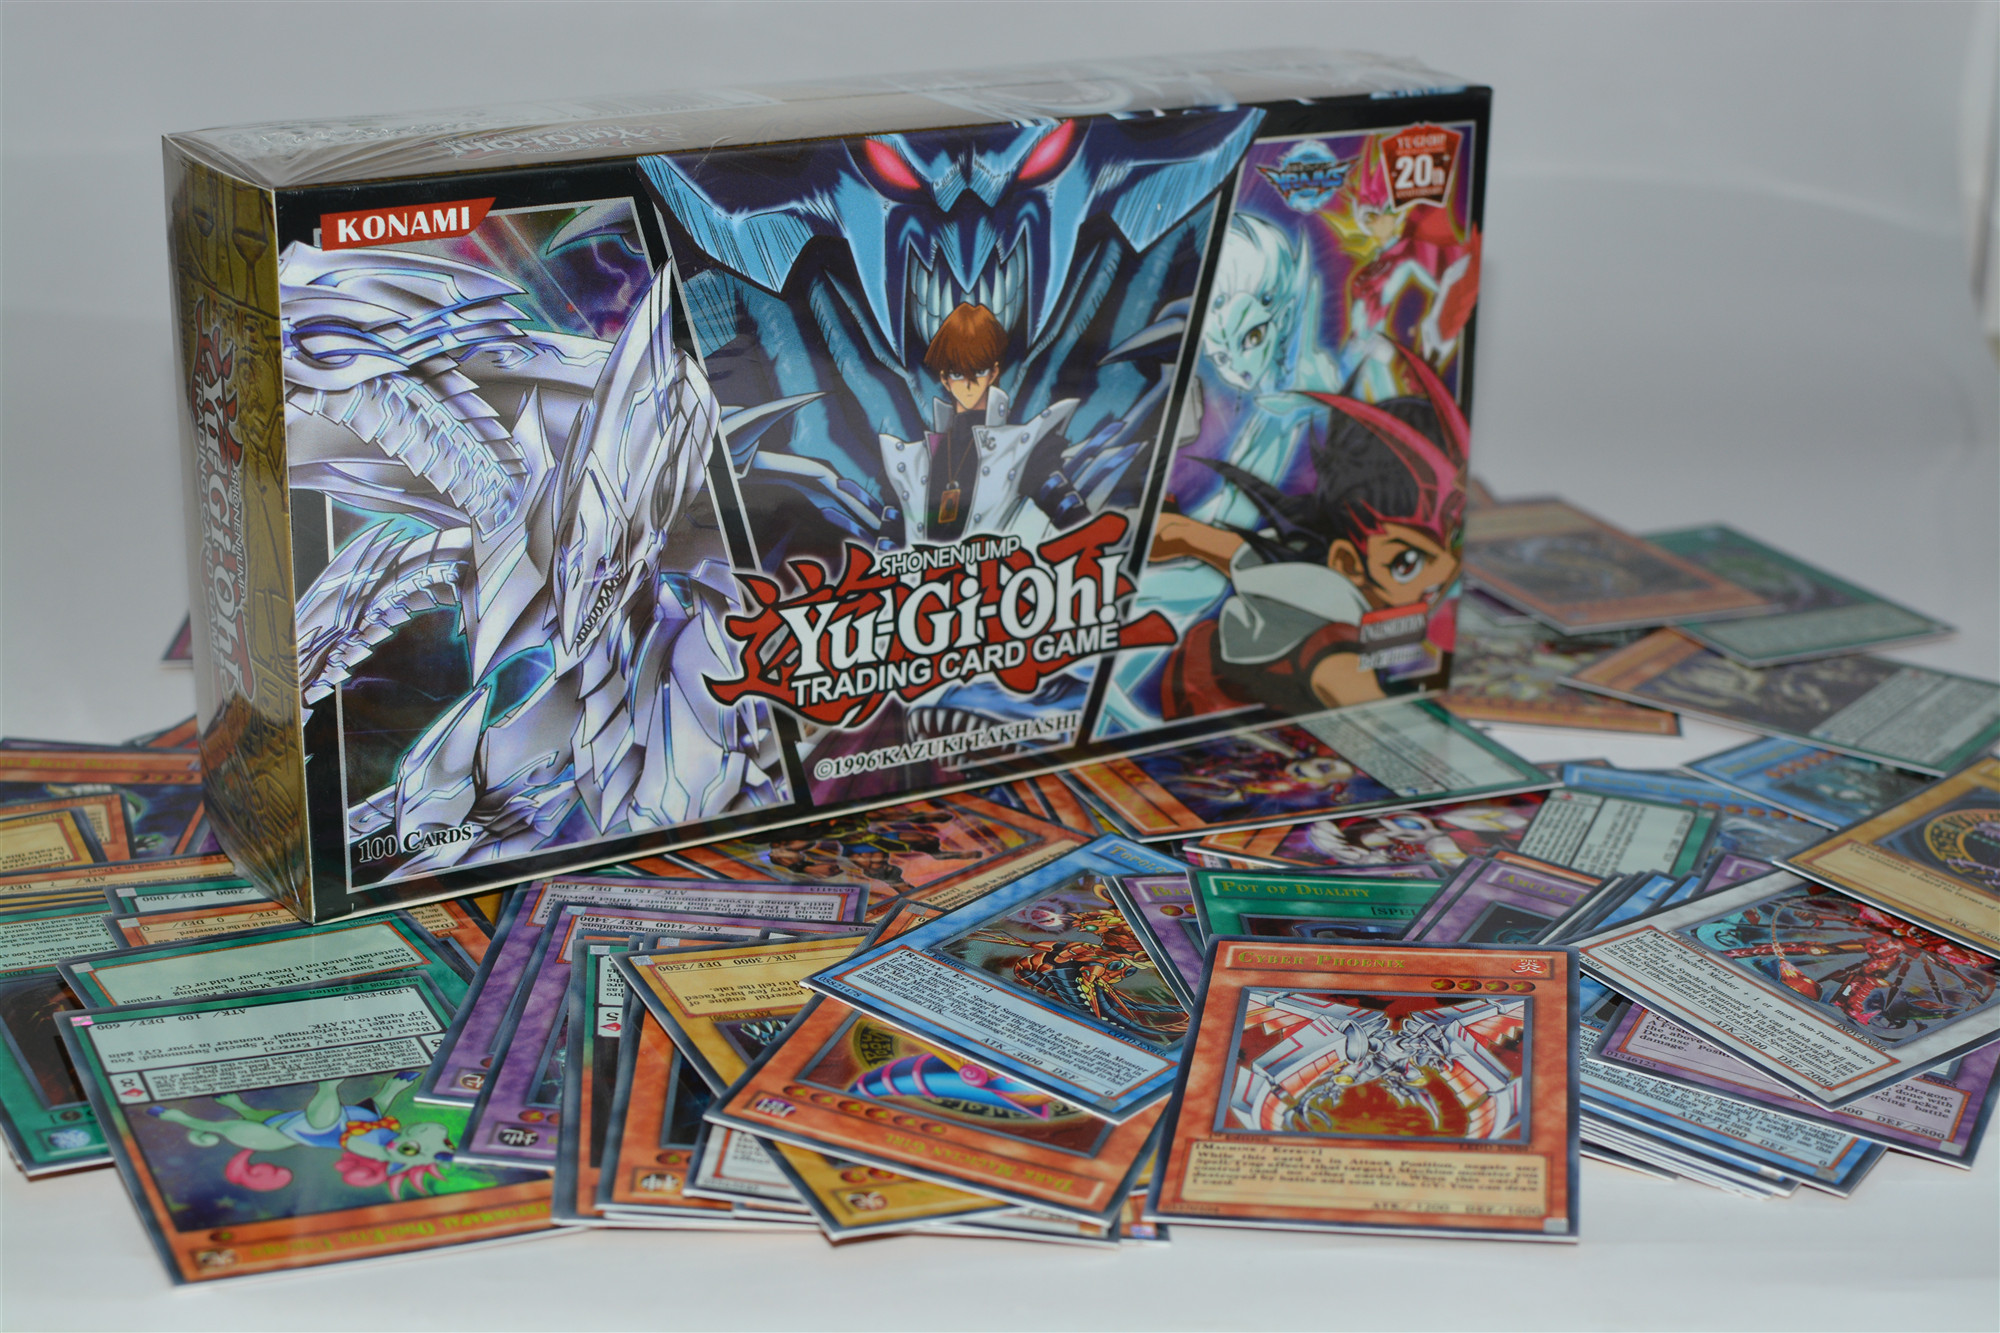 Yu gi oh 100 piece set box holographic card yu gi oh anime game collection card children boy children's toys 2